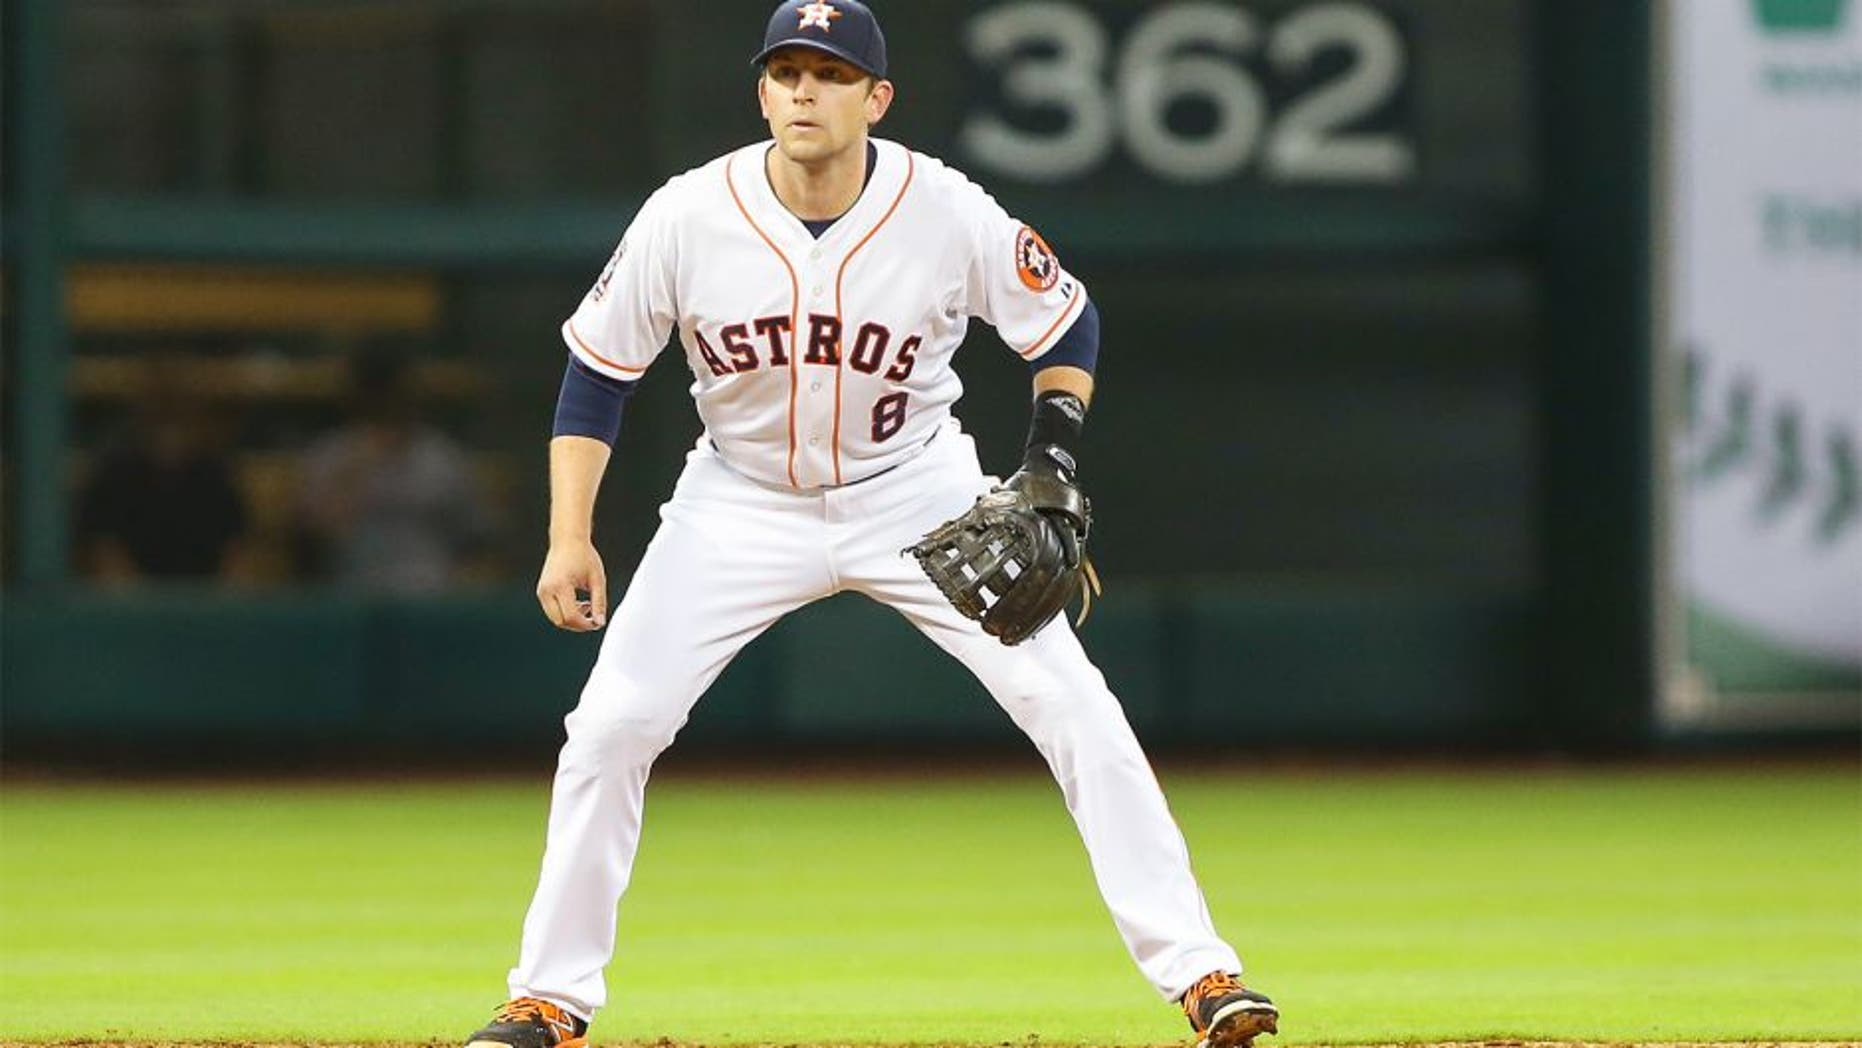 Apr 6, 2015; Houston, TX, USA; Houston Astros shortstop Jed Lowrie (8) during the game against the Cleveland Indians at Minute Maid Park. Mandatory Credit: Troy Taormina-USA TODAY Sports